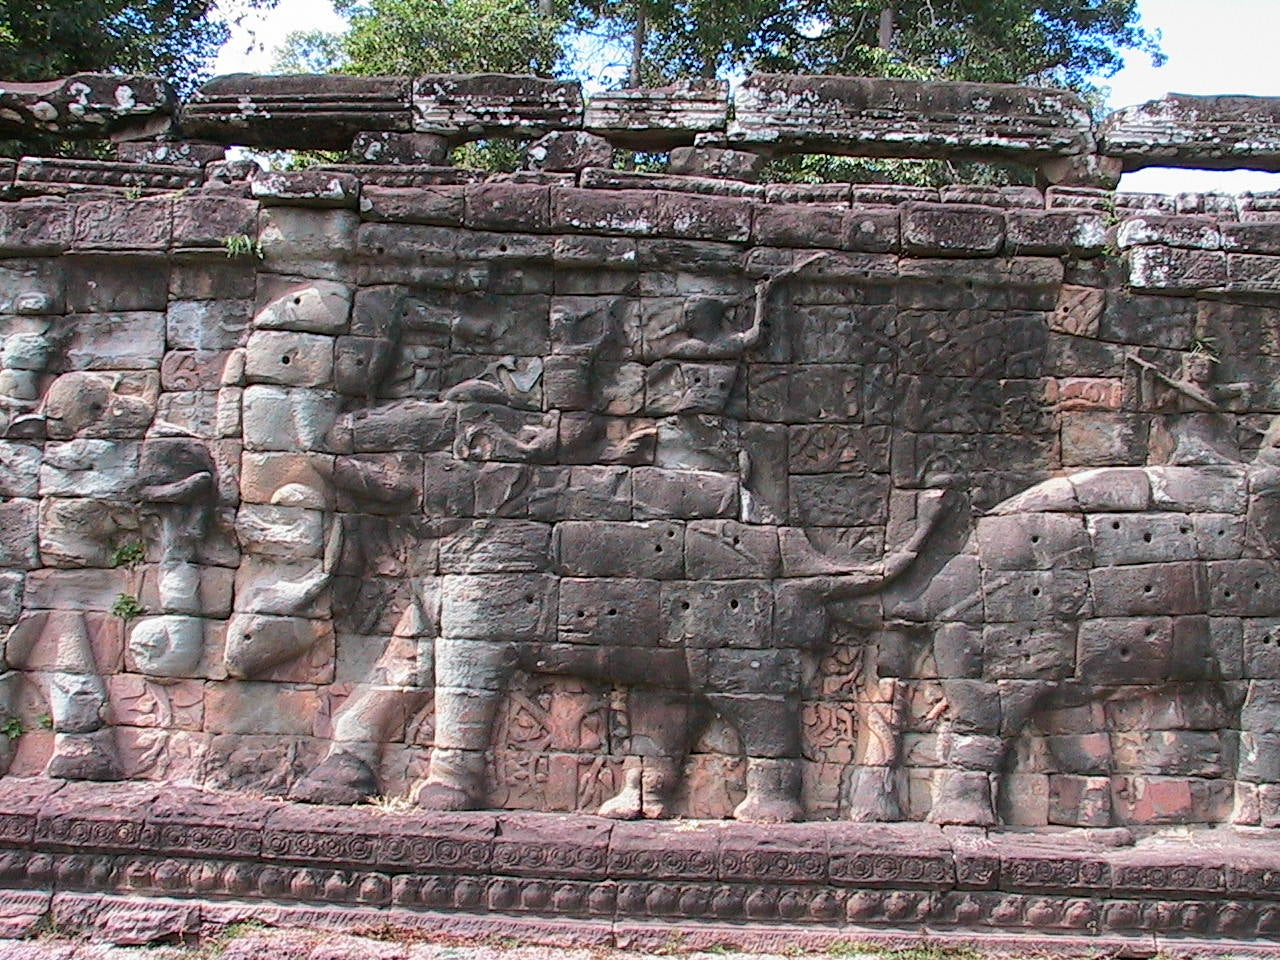 Pared en Templo Baphuon